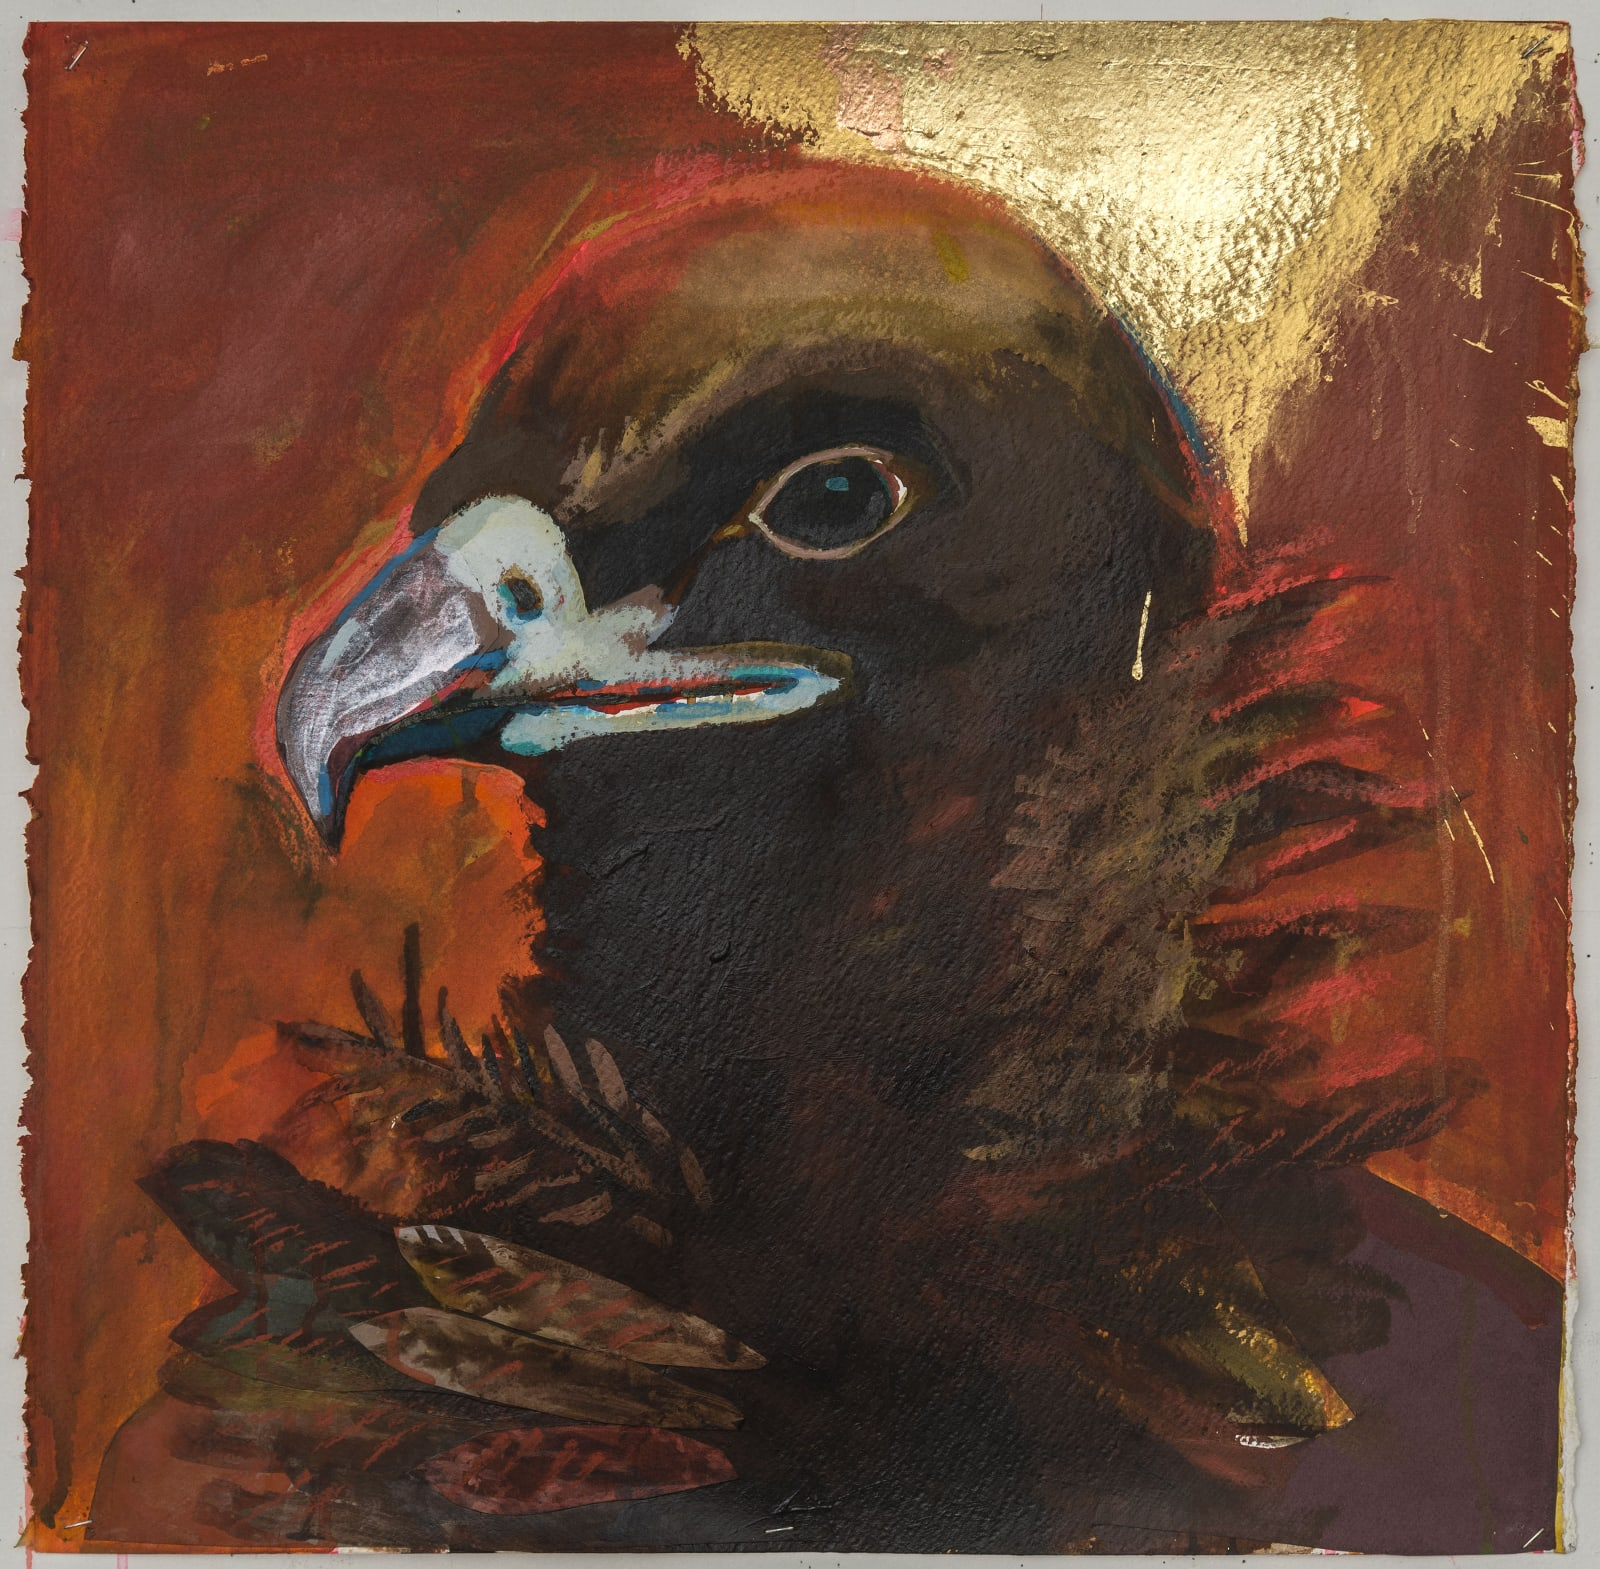 Karen Heagle, Untitled (Cinereous Vulture), 2018 acrylic, ink, collage, gold leaf, pastel on paper, 23 1/2 x 24 in